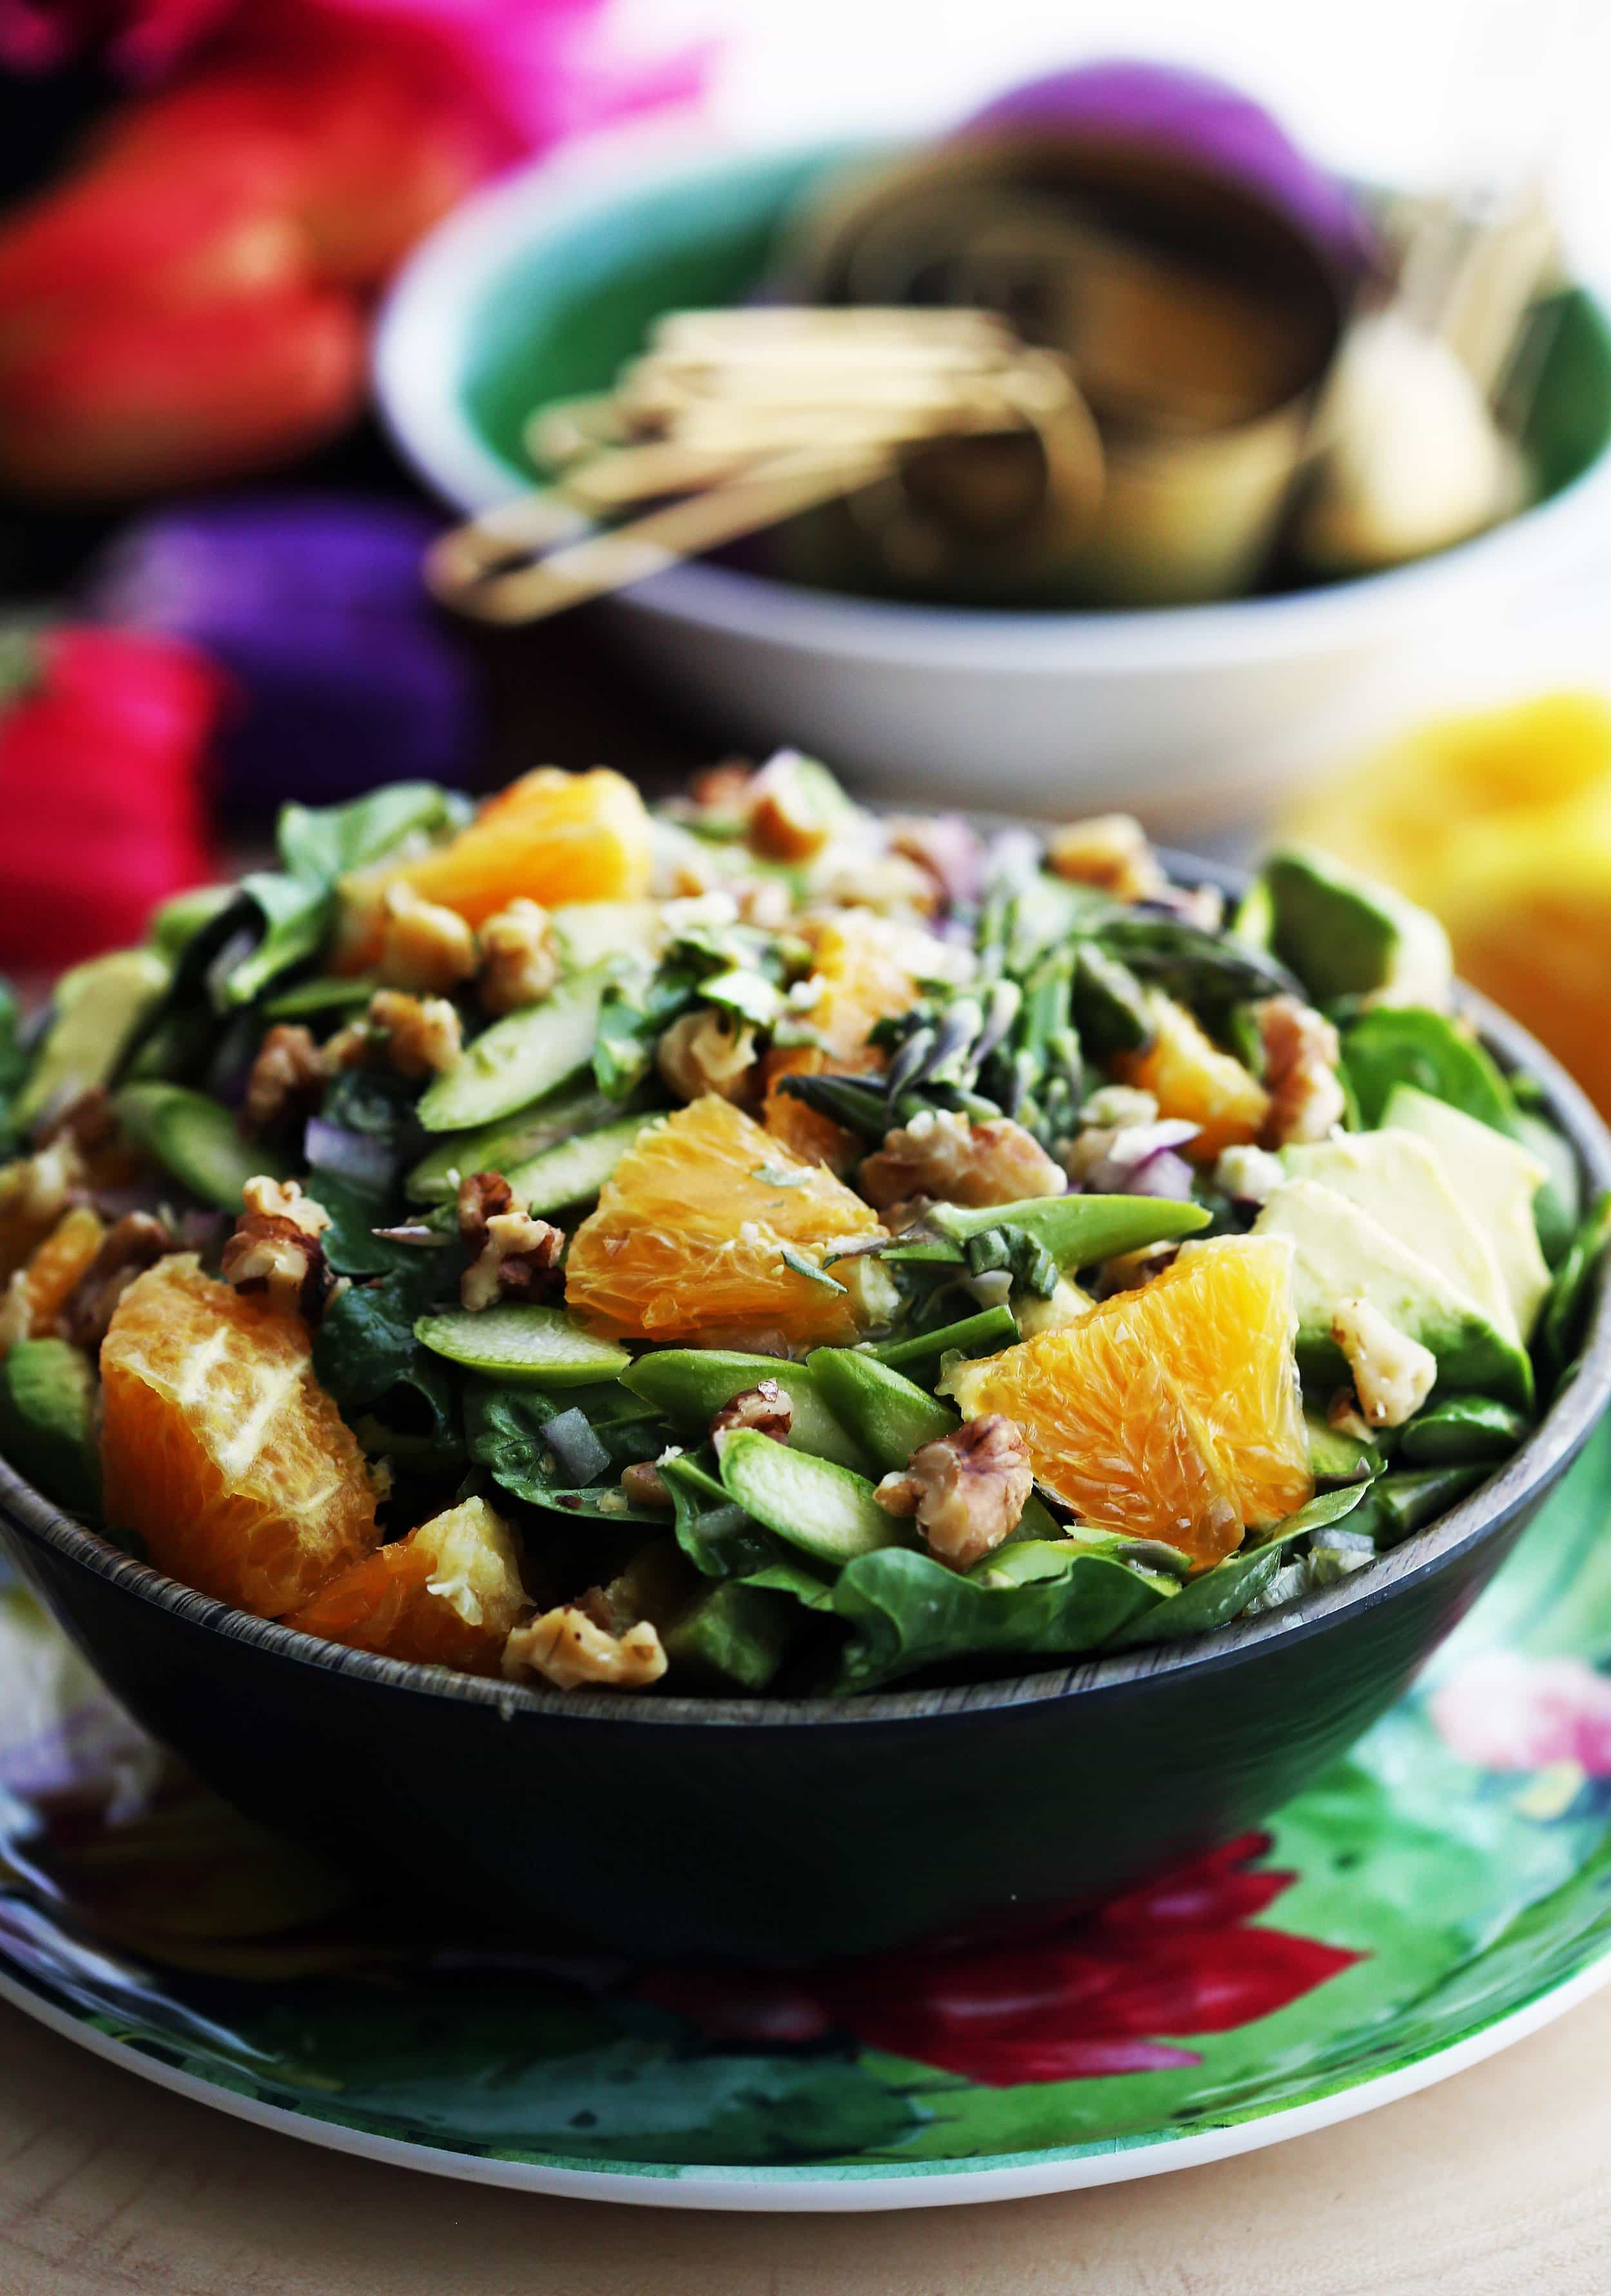 A closeup view of a bowl of Asparagus Orange Spinach Salad with Basil Lemon Vinaigrette